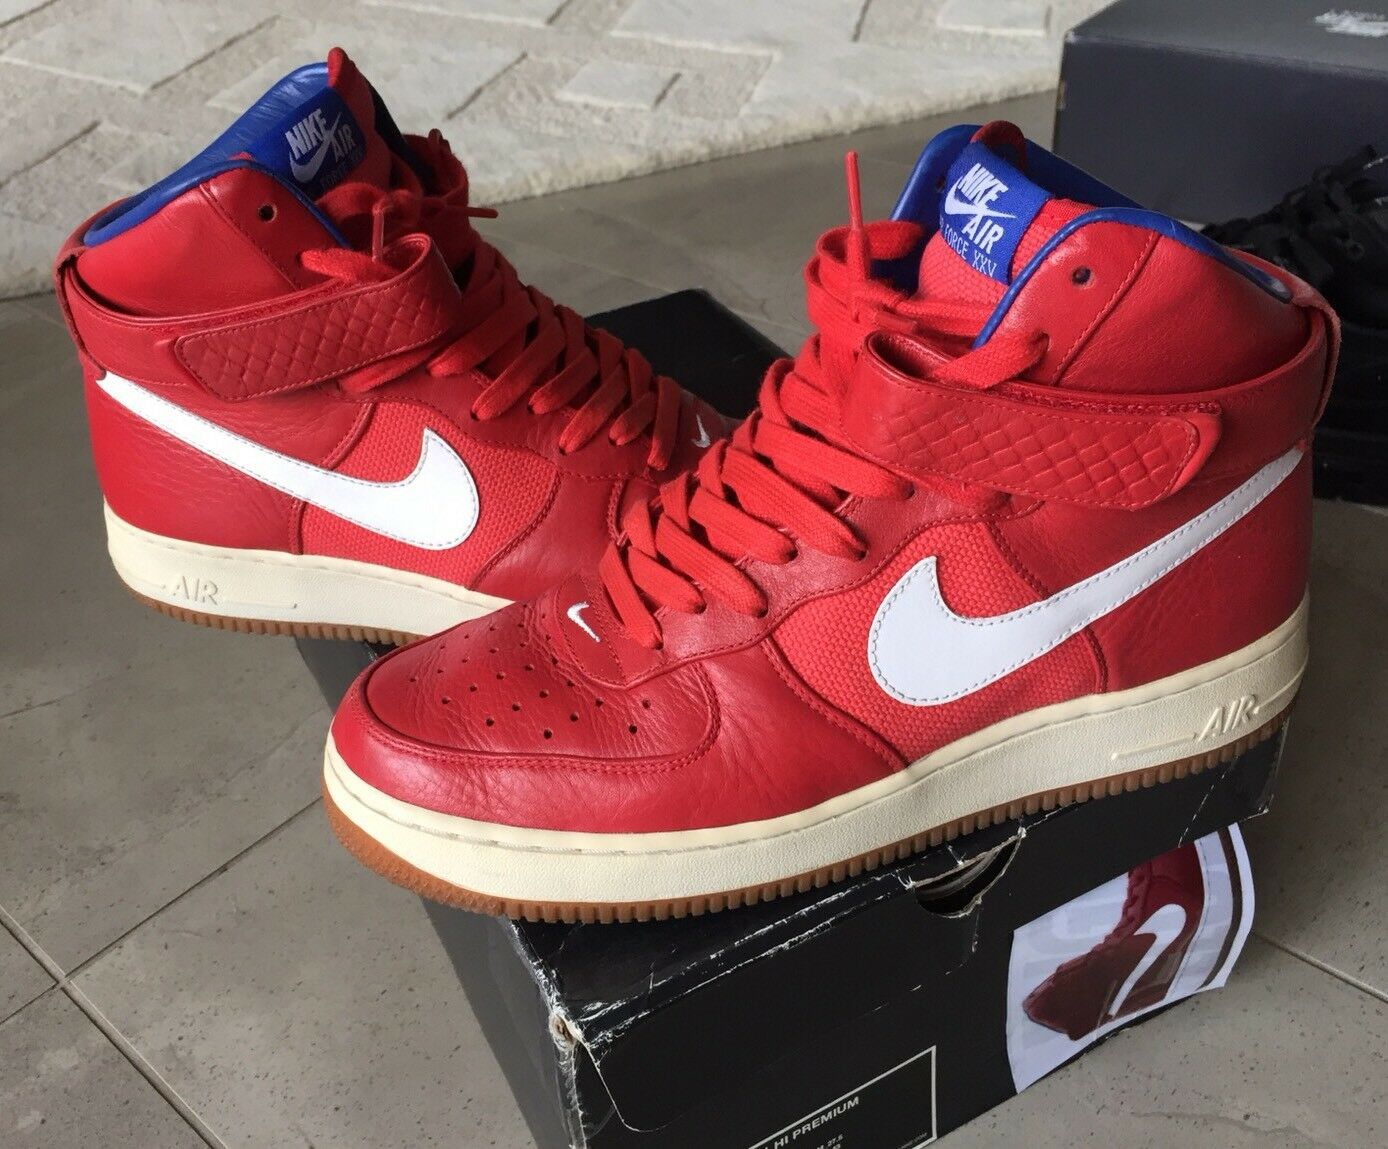 Nike Air Force 1 Bobbito Garcia Gum Premium QS QS QS High 9.5 White Red Blue Dunk b442f3